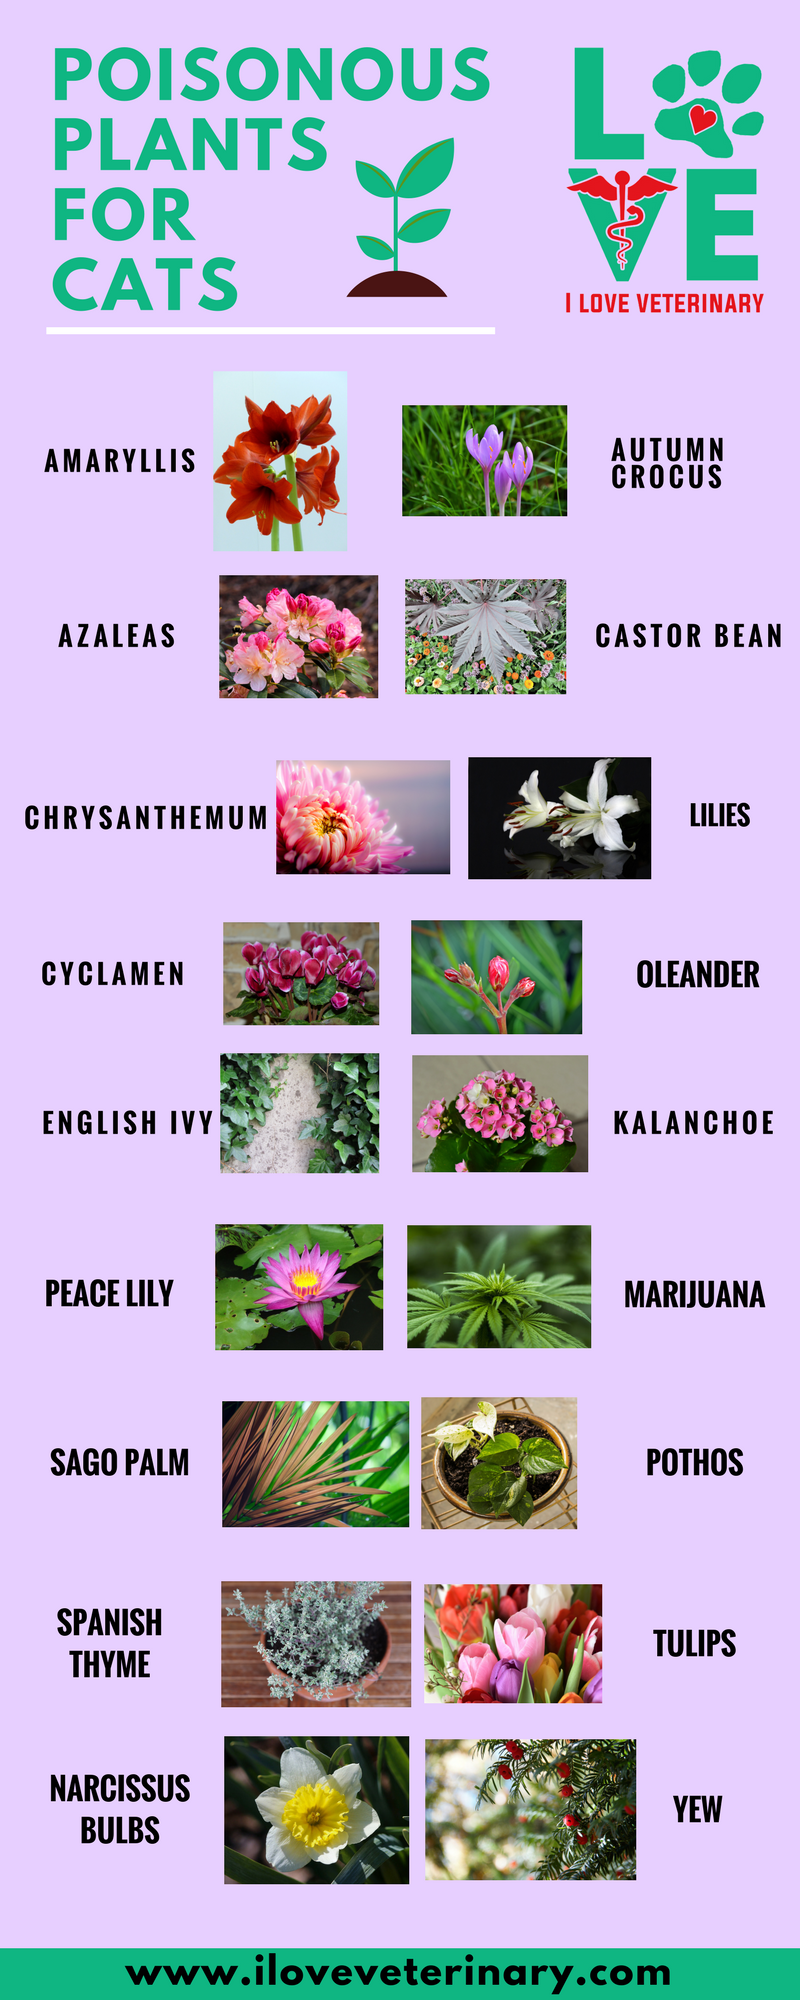 Poisonous Plants For Cats Infographic Poisonous Plants Cat Plants Best Indoor Plants